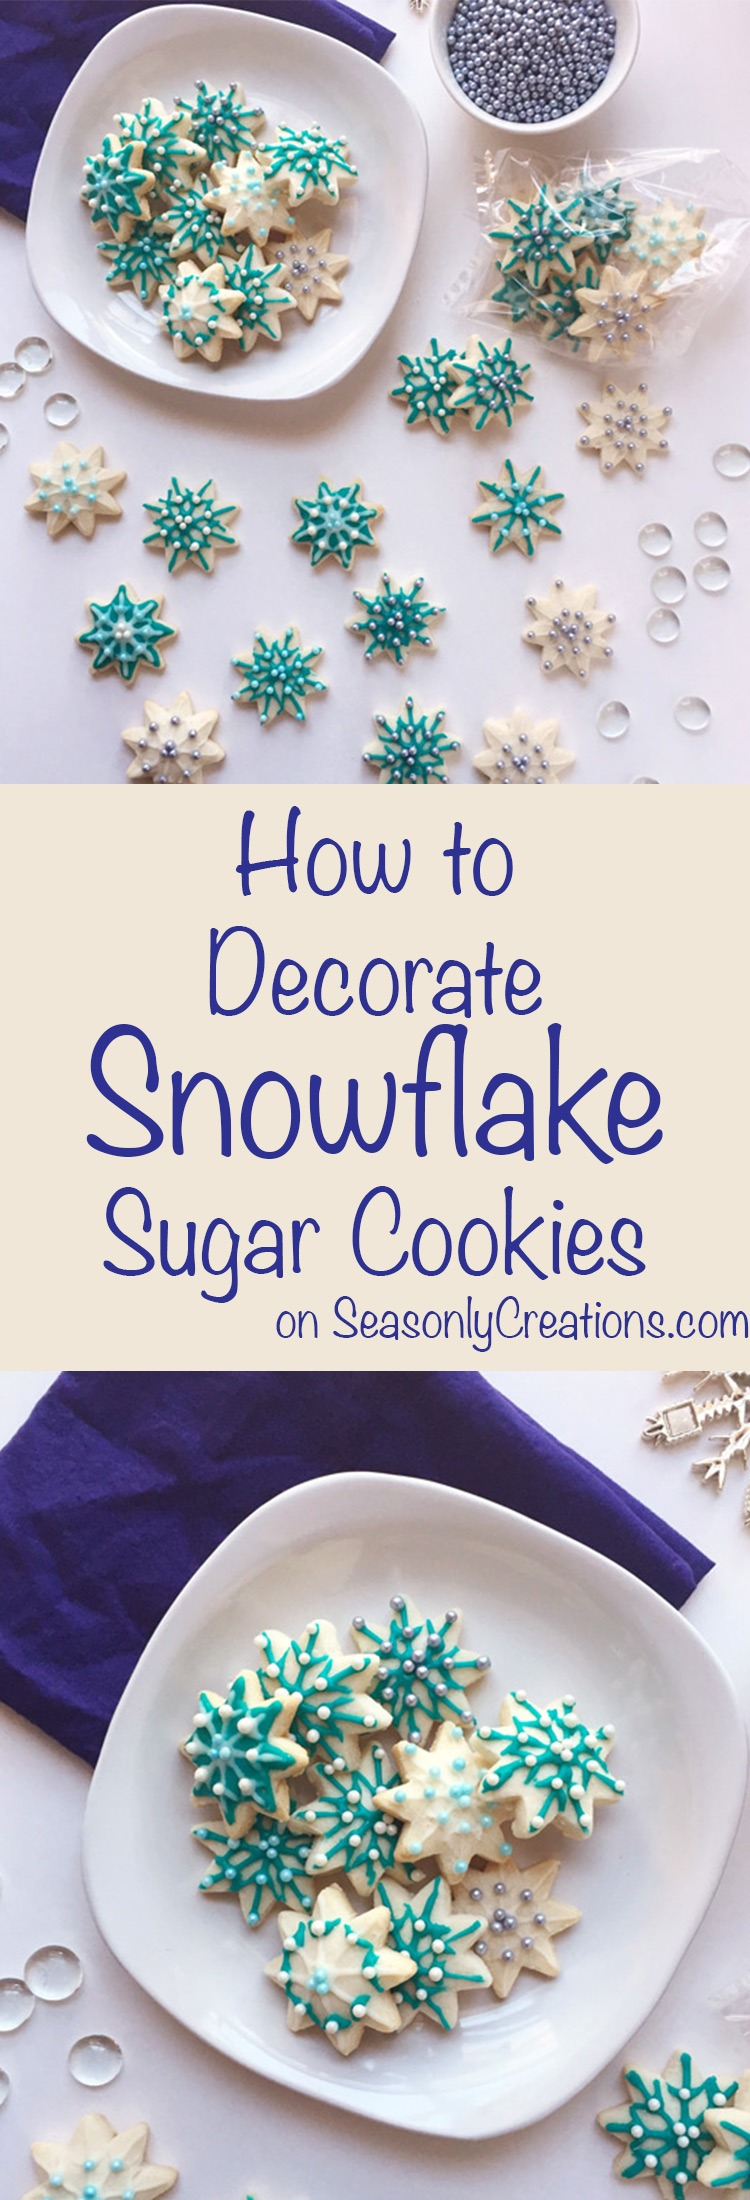 How to Decorate Snowflake Sugar Cookies. A complete step-by-step guide to decorating your own elegant snowflake sugar cookies. This is a great DIY holiday project and these make wonderful food gifts (psst, they're freezable!). Click through for the full decorating tutorial! | SeasonlyCreations.com | @SeasonlyBlog